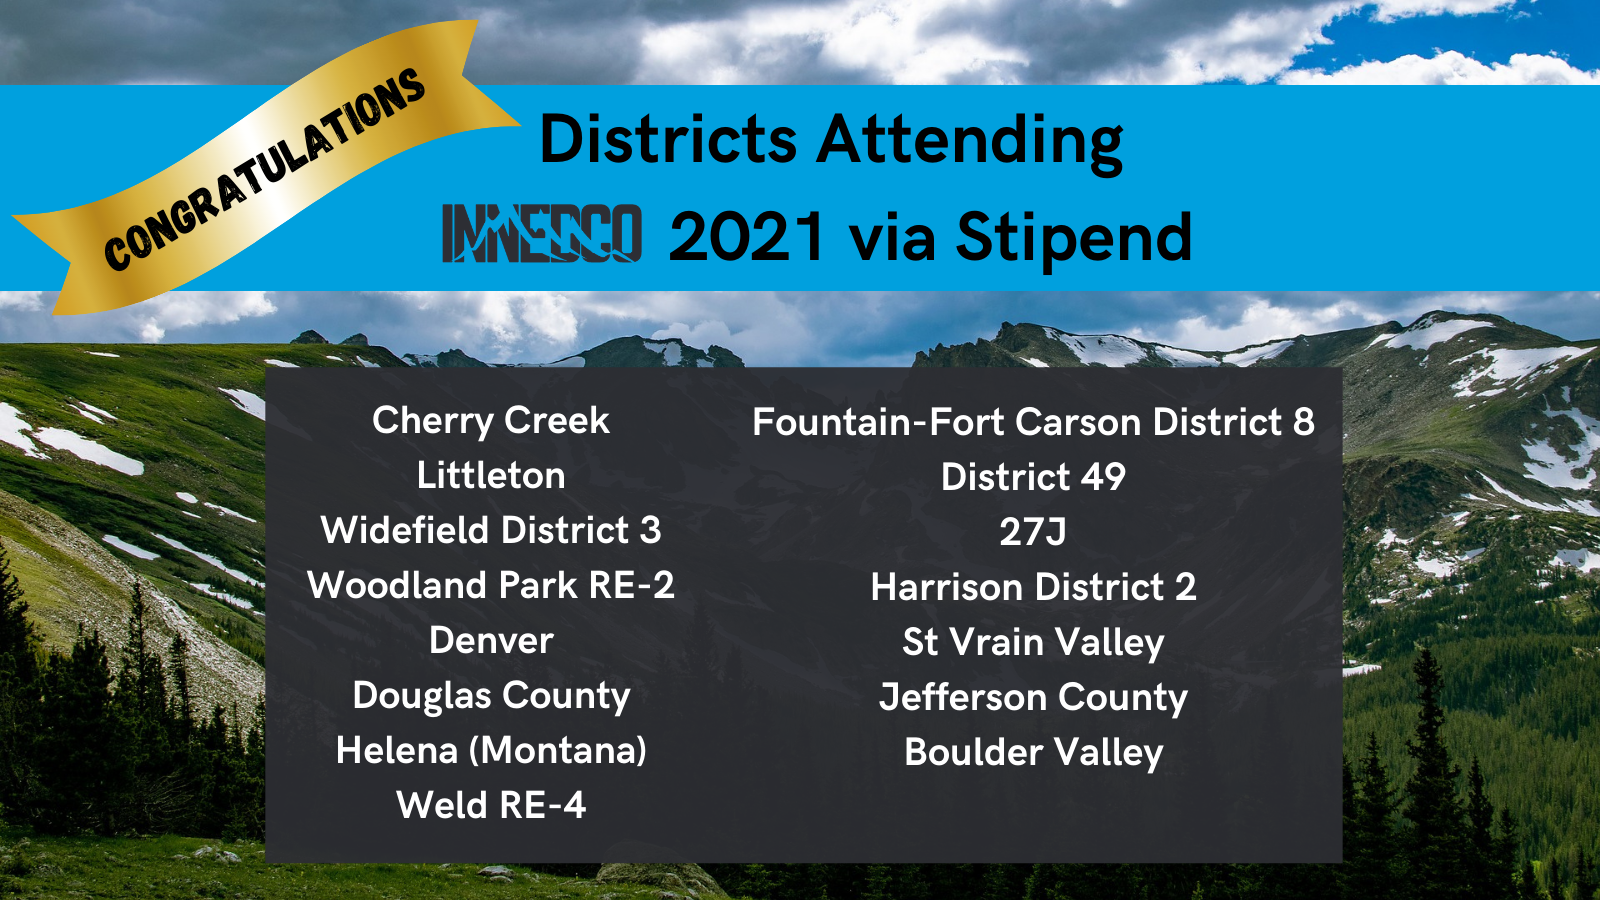 Districts Attending